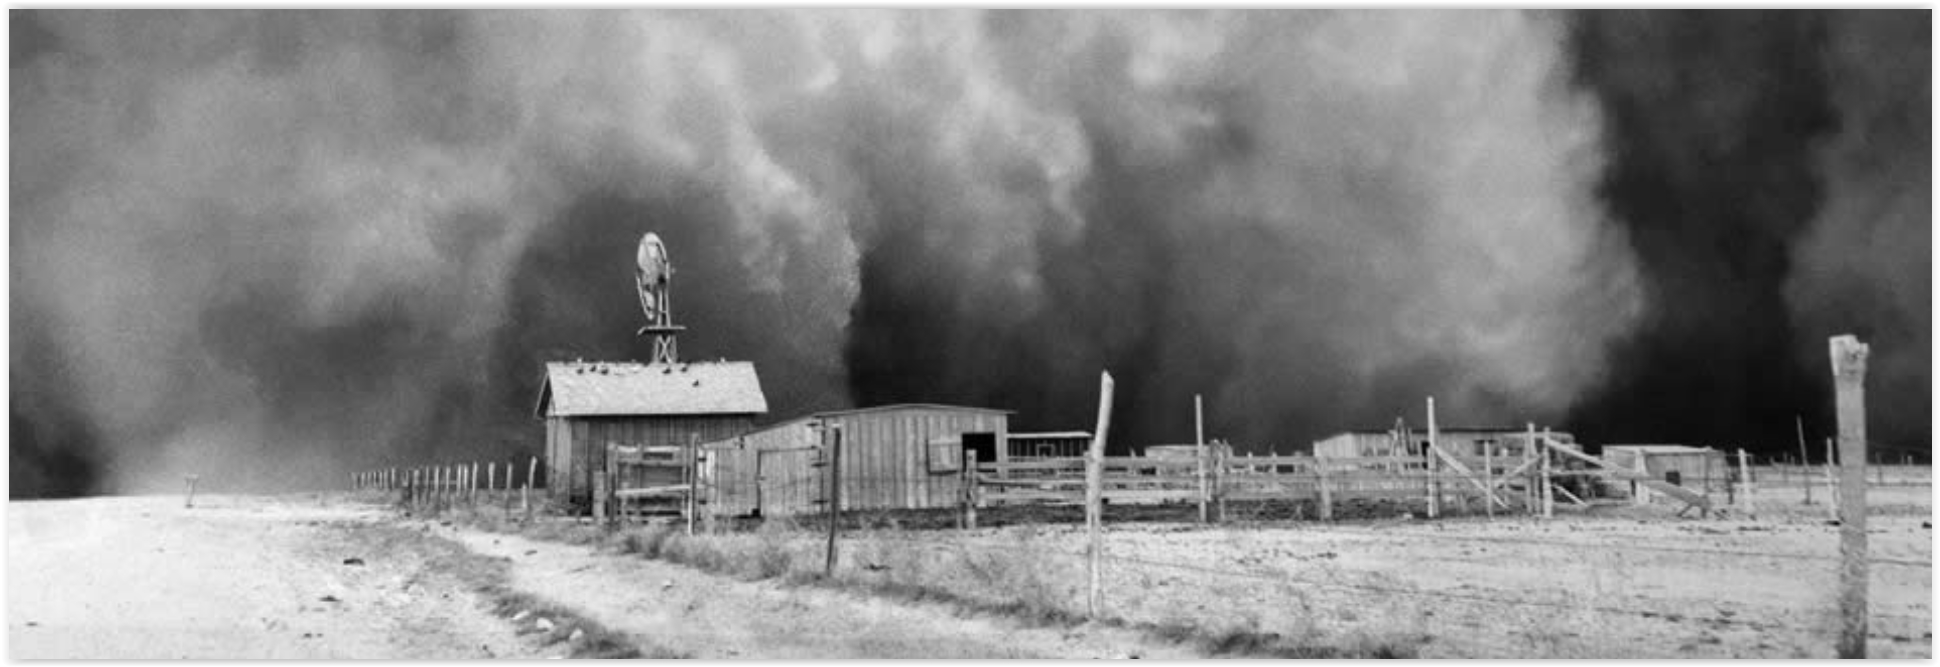 Upi has more perspective on the study referenced above climate change will bring more dust storms to the great